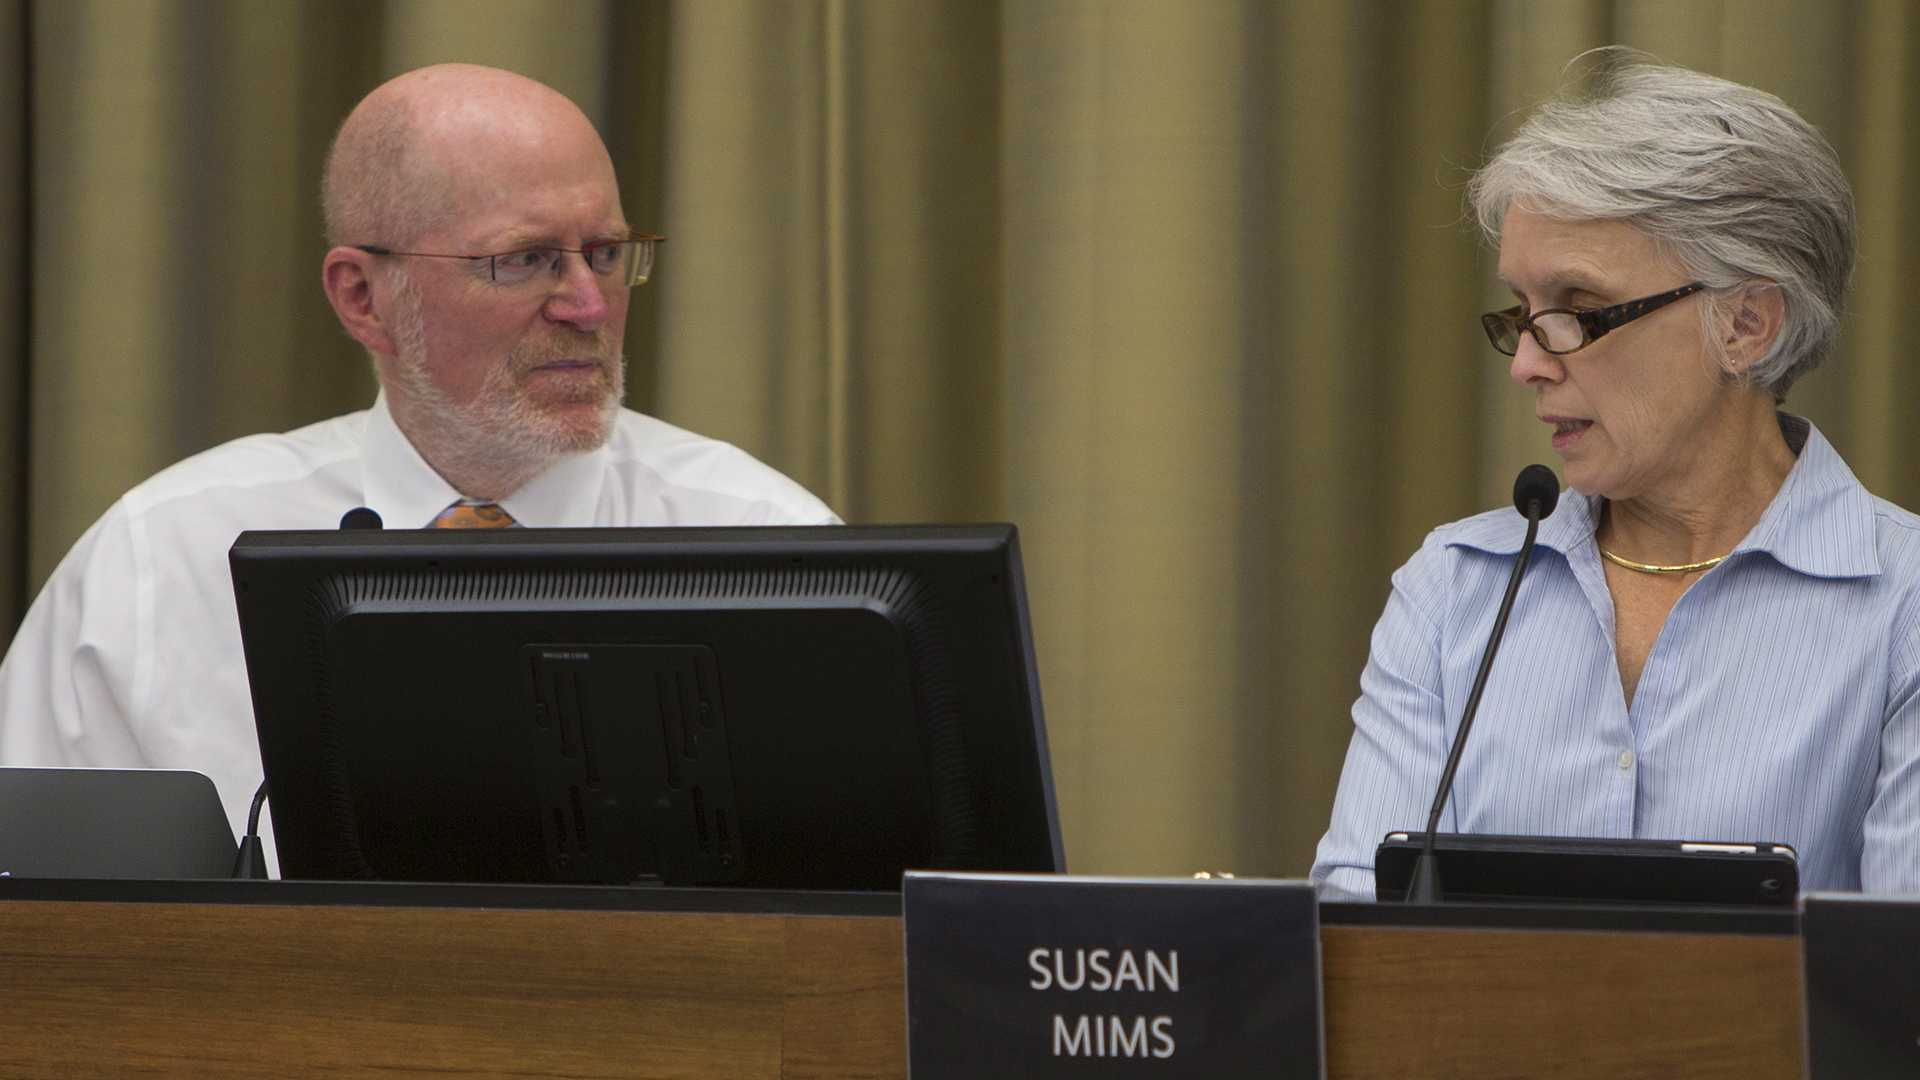 Iowa City mayor Jim Throgmorton and City Councilor Susan Mims speak during an Iowa City Council meeting on Tuesday, Oct. 18, 2016. (The Daily Iowan/Olivia Sun)